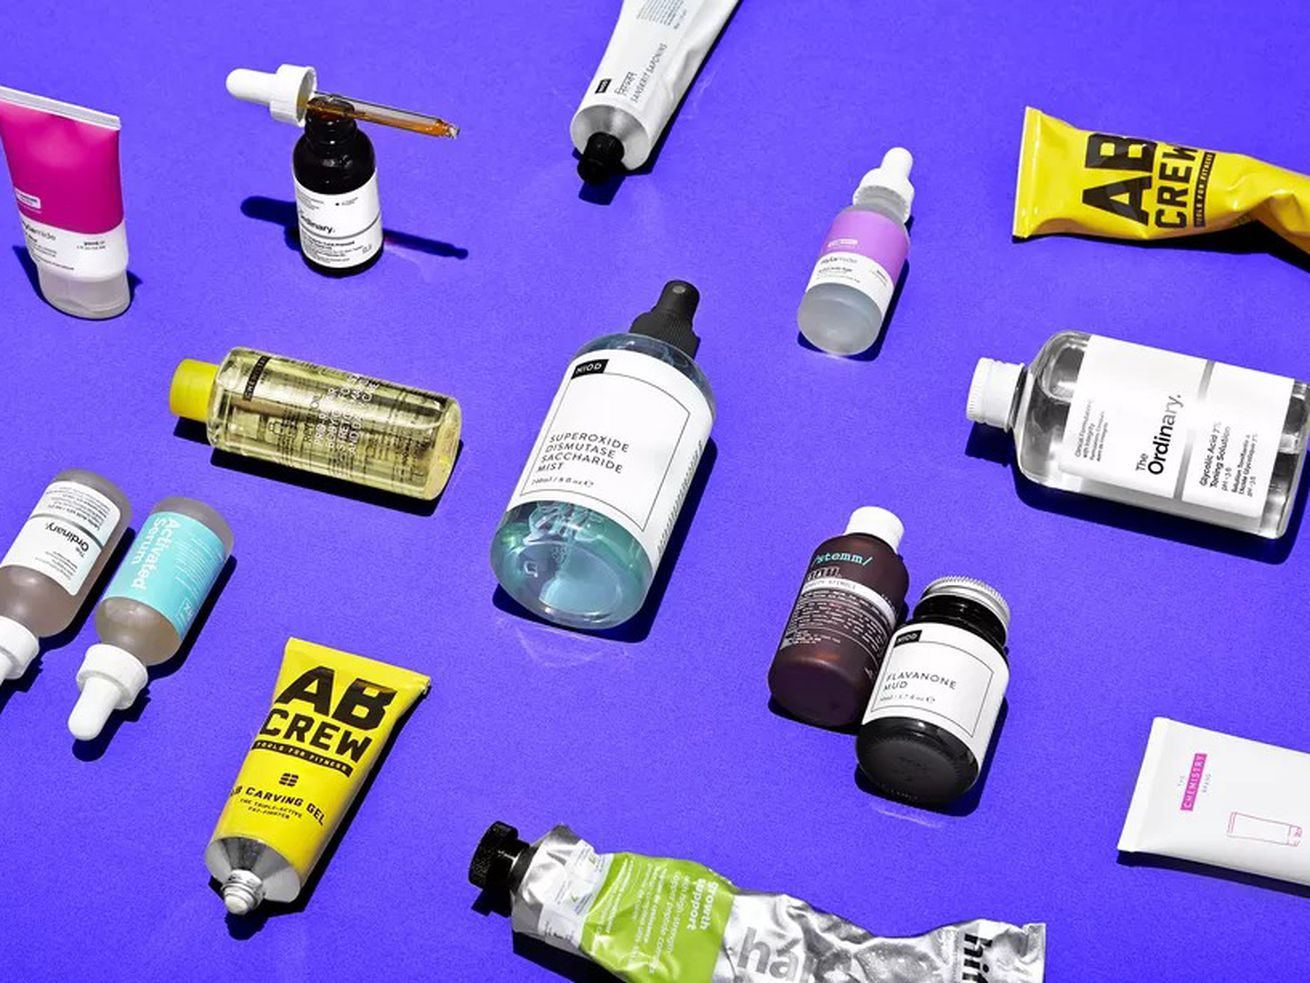 An assortment of products from several Deciem brands.